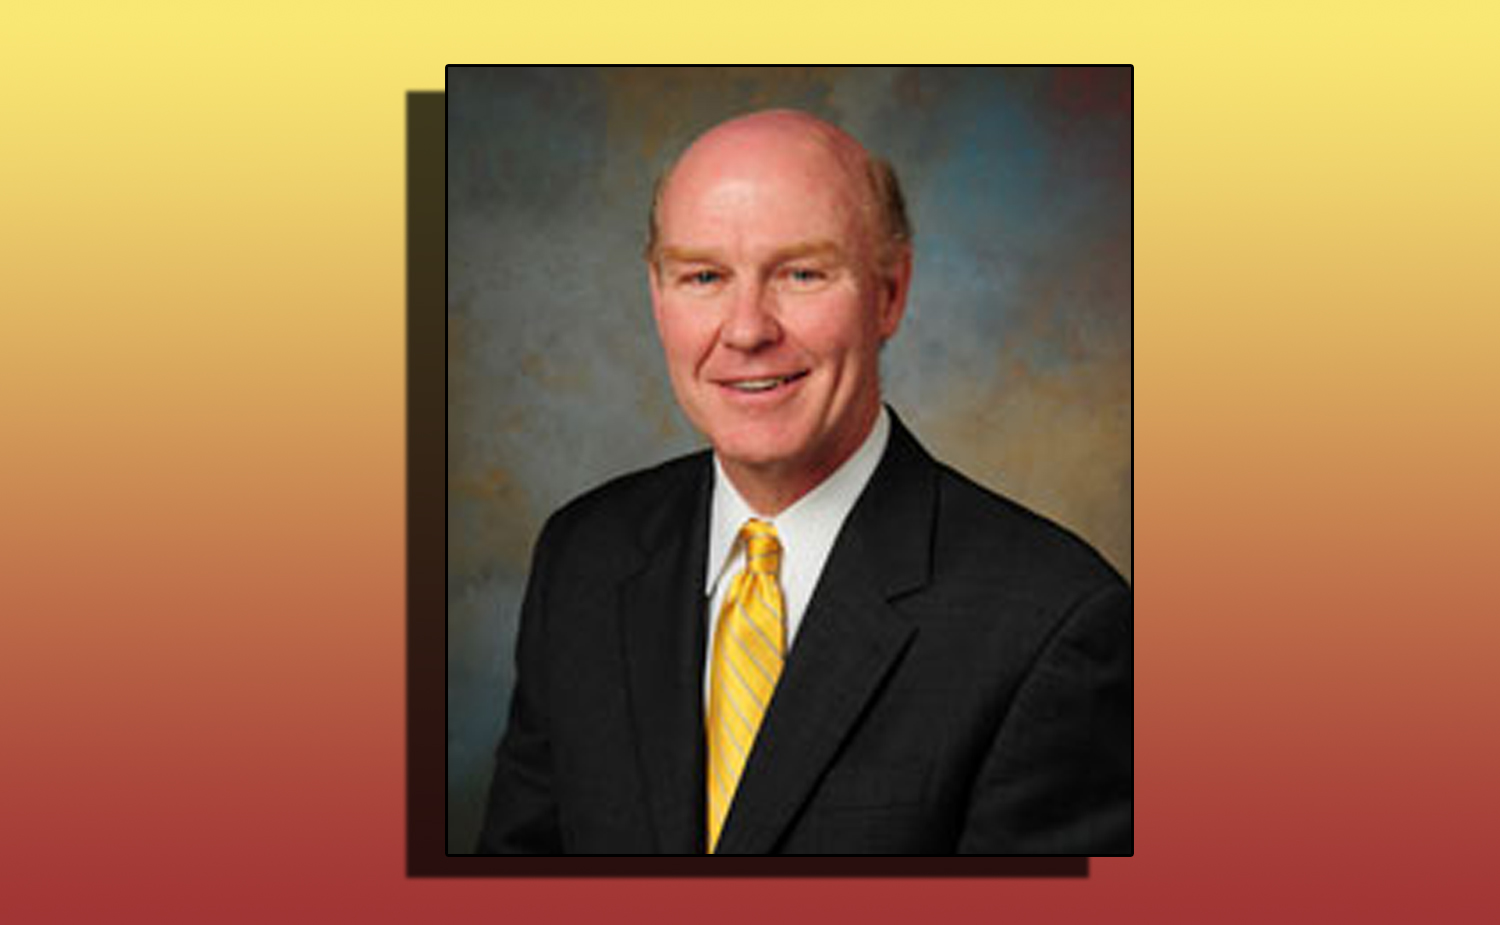 Dr. Rooney Named New President of St. John Fisher